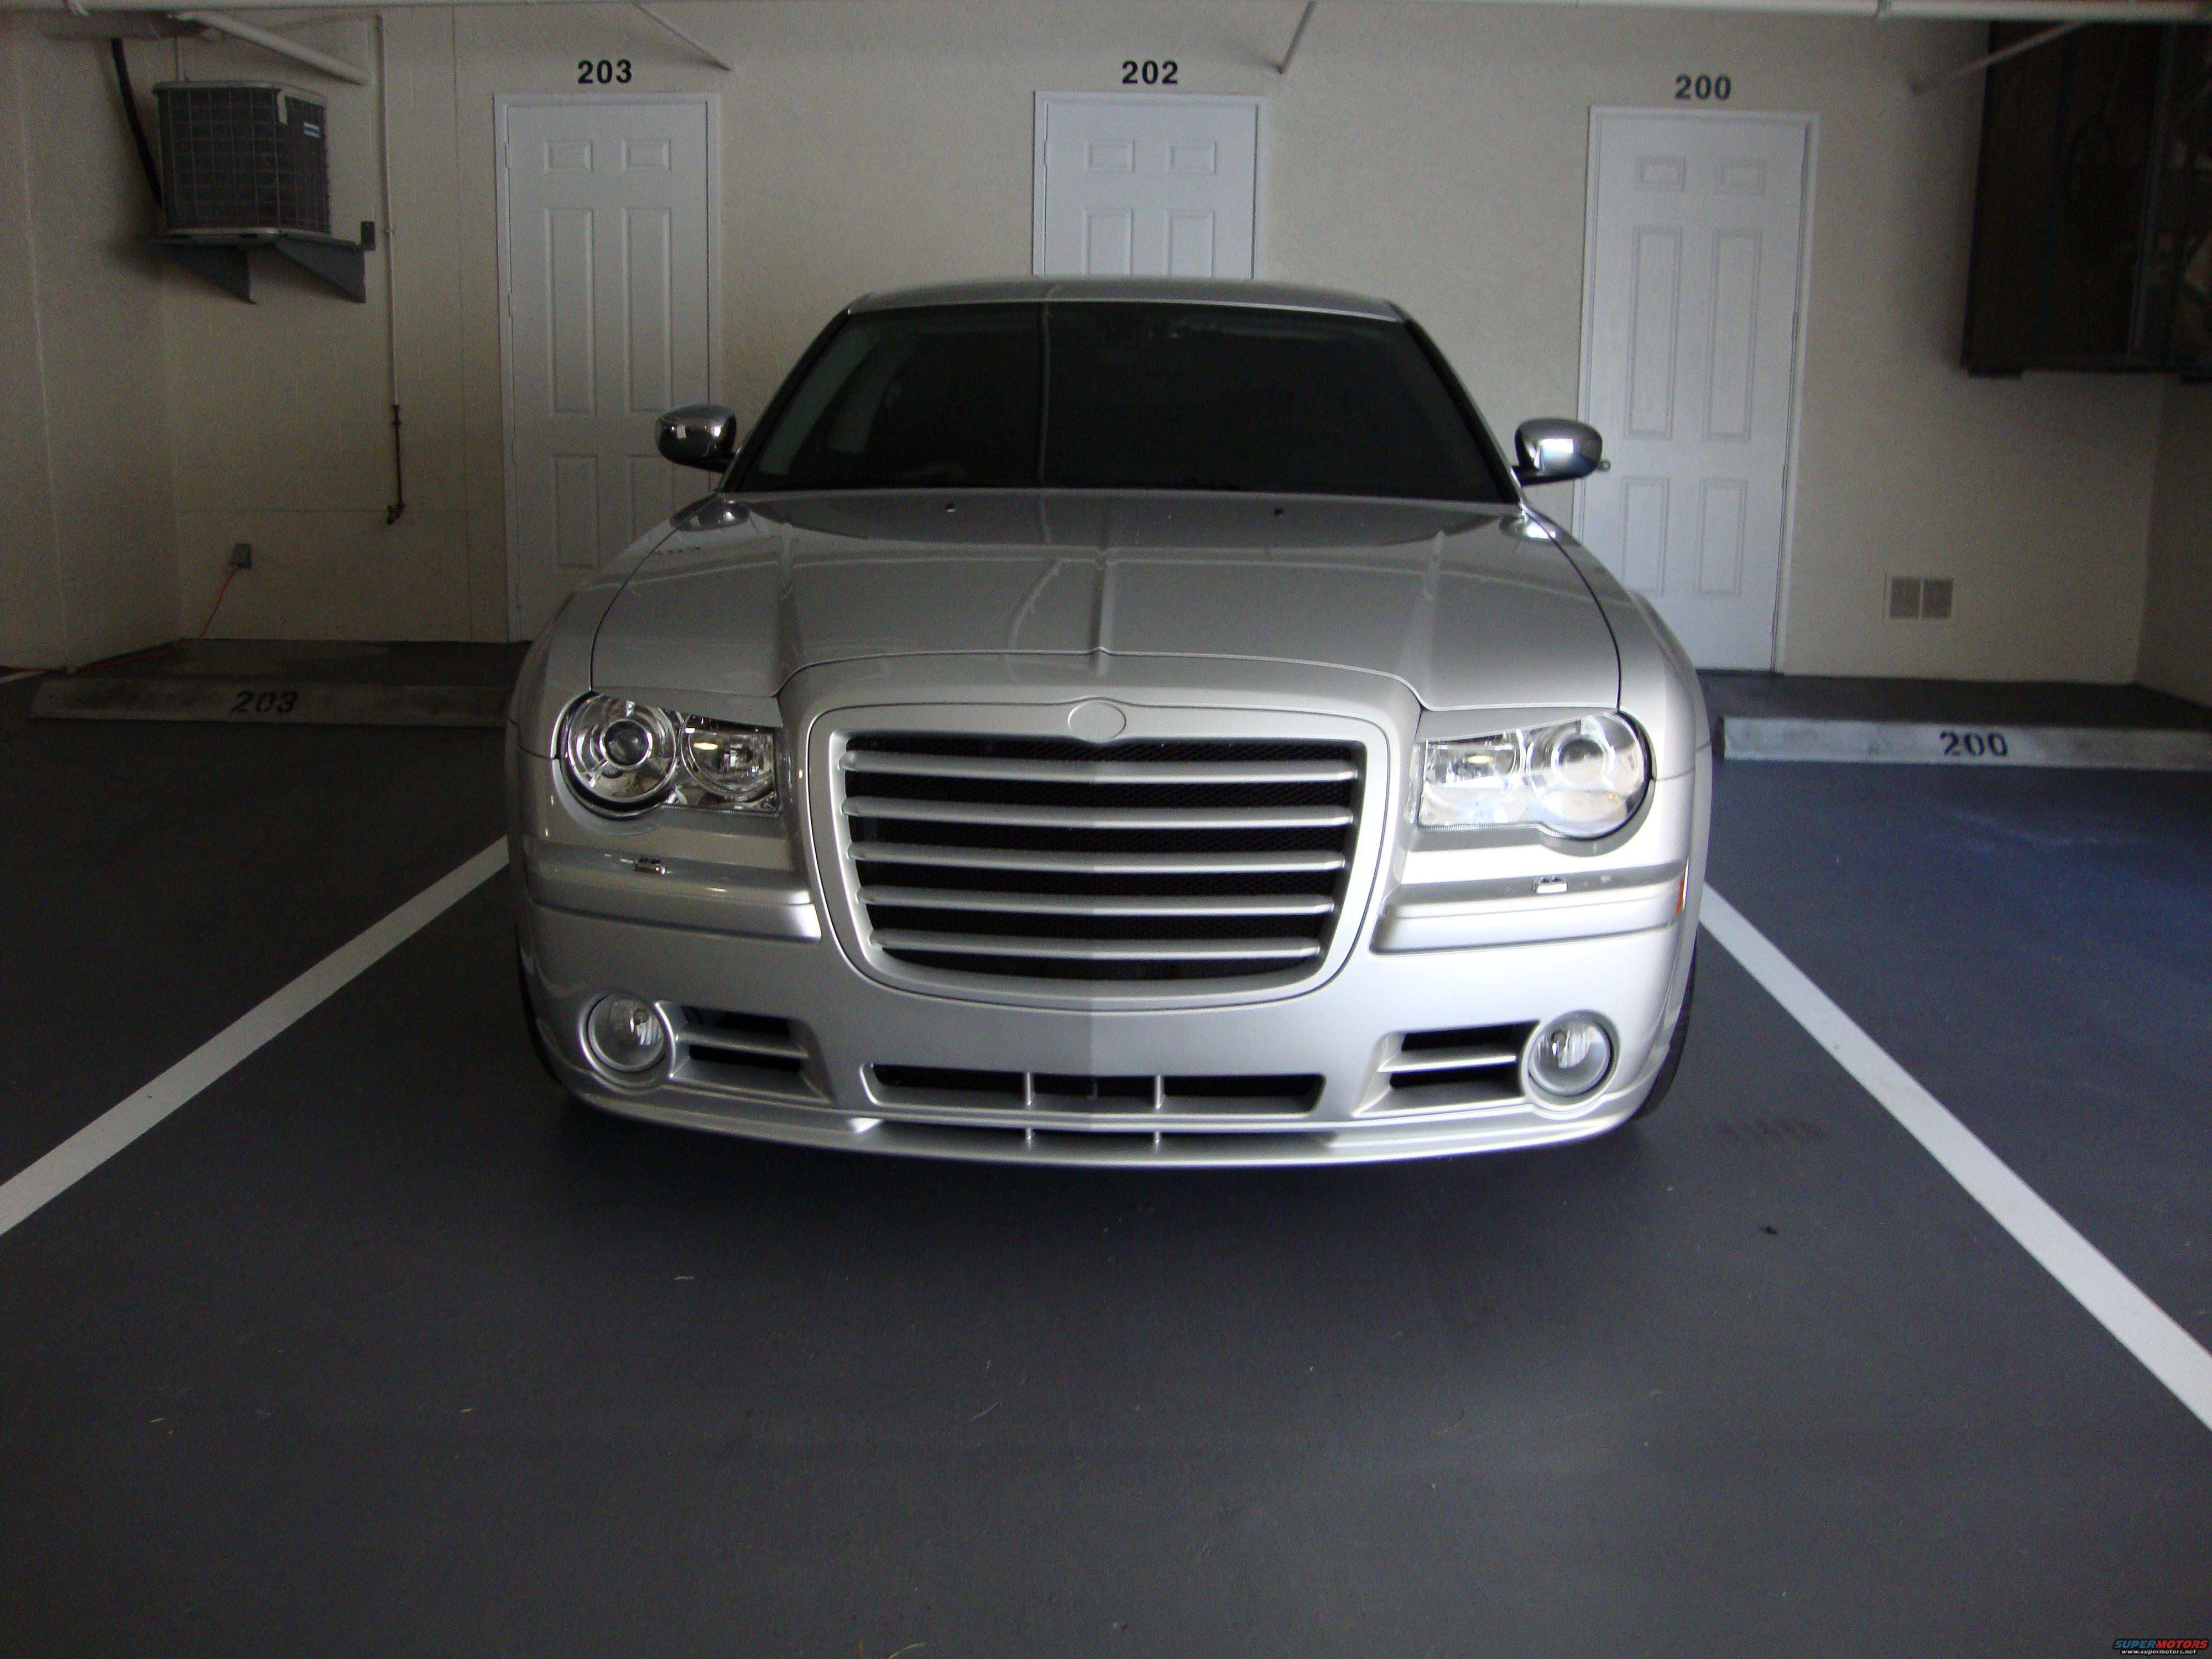 2008 chrysler 300 srt8 bumper and grip grille picture. Black Bedroom Furniture Sets. Home Design Ideas